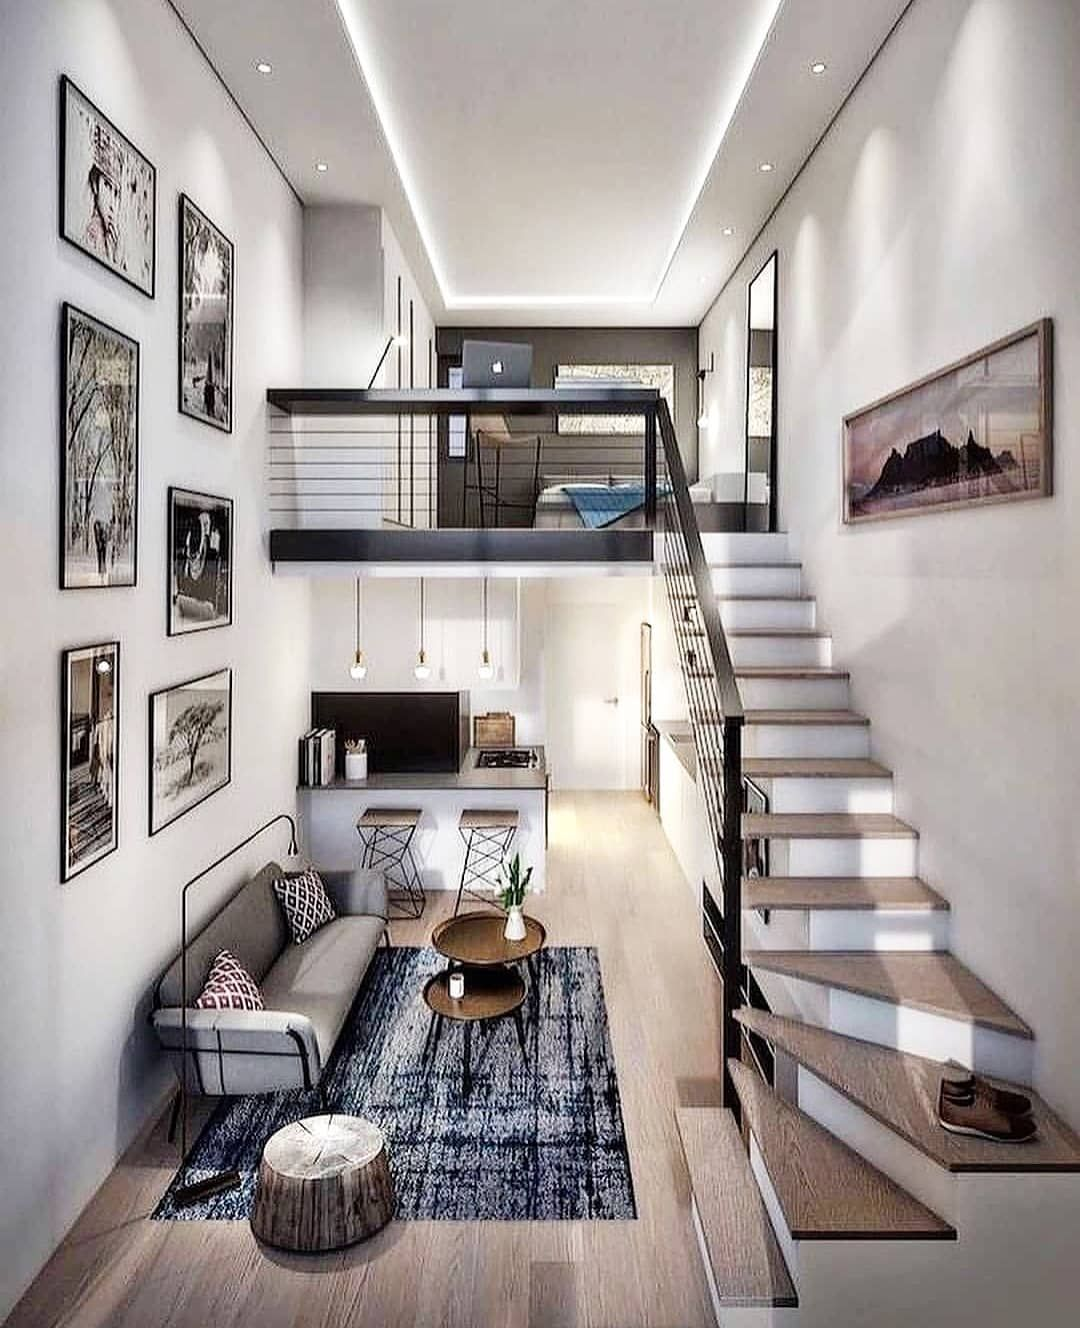 Small Loft Apartments: Lovely Small Loft Apartment Inspo ♥️♥️ What Do You Think